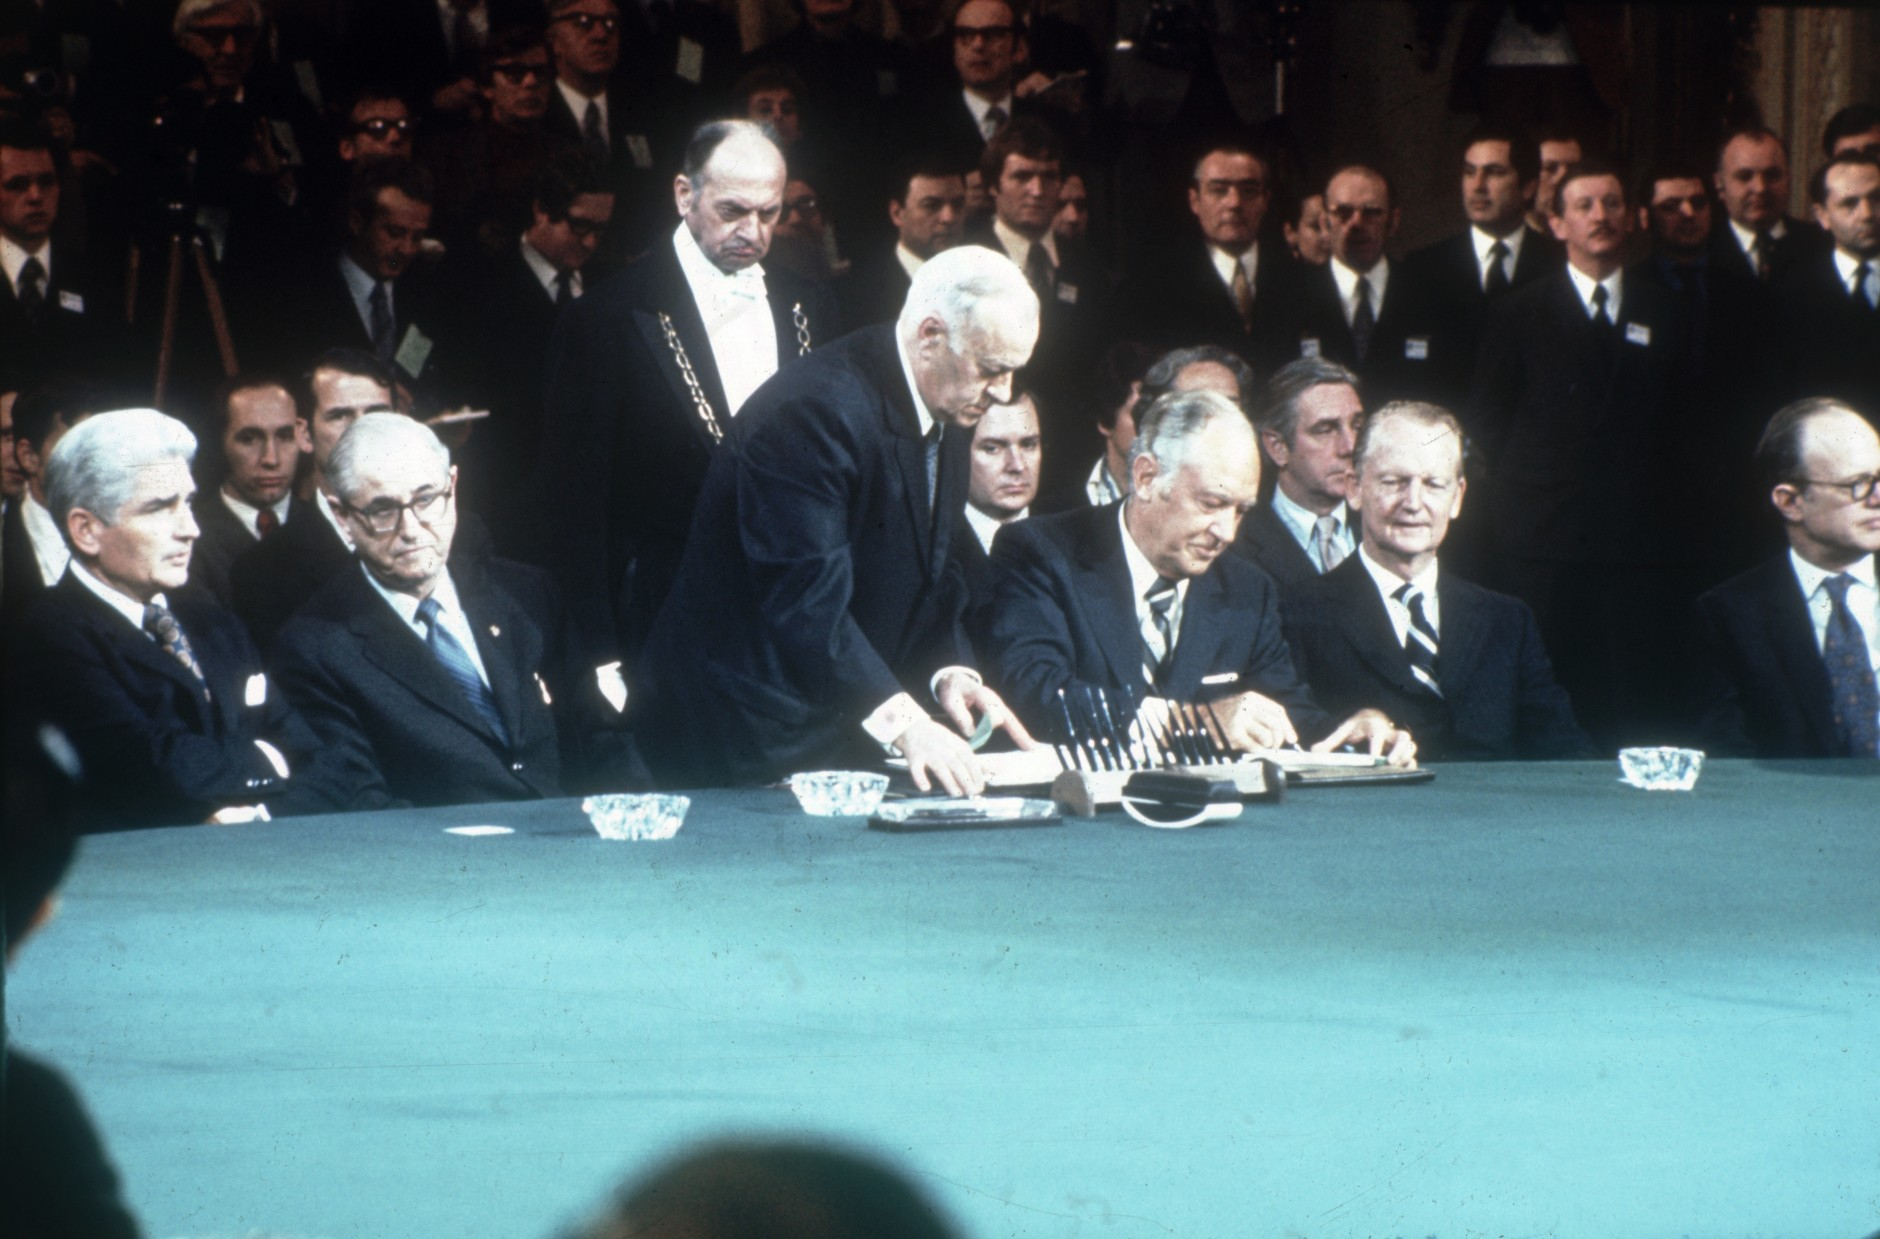 January 1973:  American Secretary of State, William Rogers (1969 - 1973), signing the Vietnam peace treaty in Paris. Also present to sign are Nguyen Duy Trinh, North Vietnam's minister of foreign affairs, the South Vietnamese foreign minister Tran Van Lam, American Secretary of State Henry Kissinger (1973 - 1974) and Vietnamese politician Le Duc Tho.  (Photo by Keystone/Getty Images)